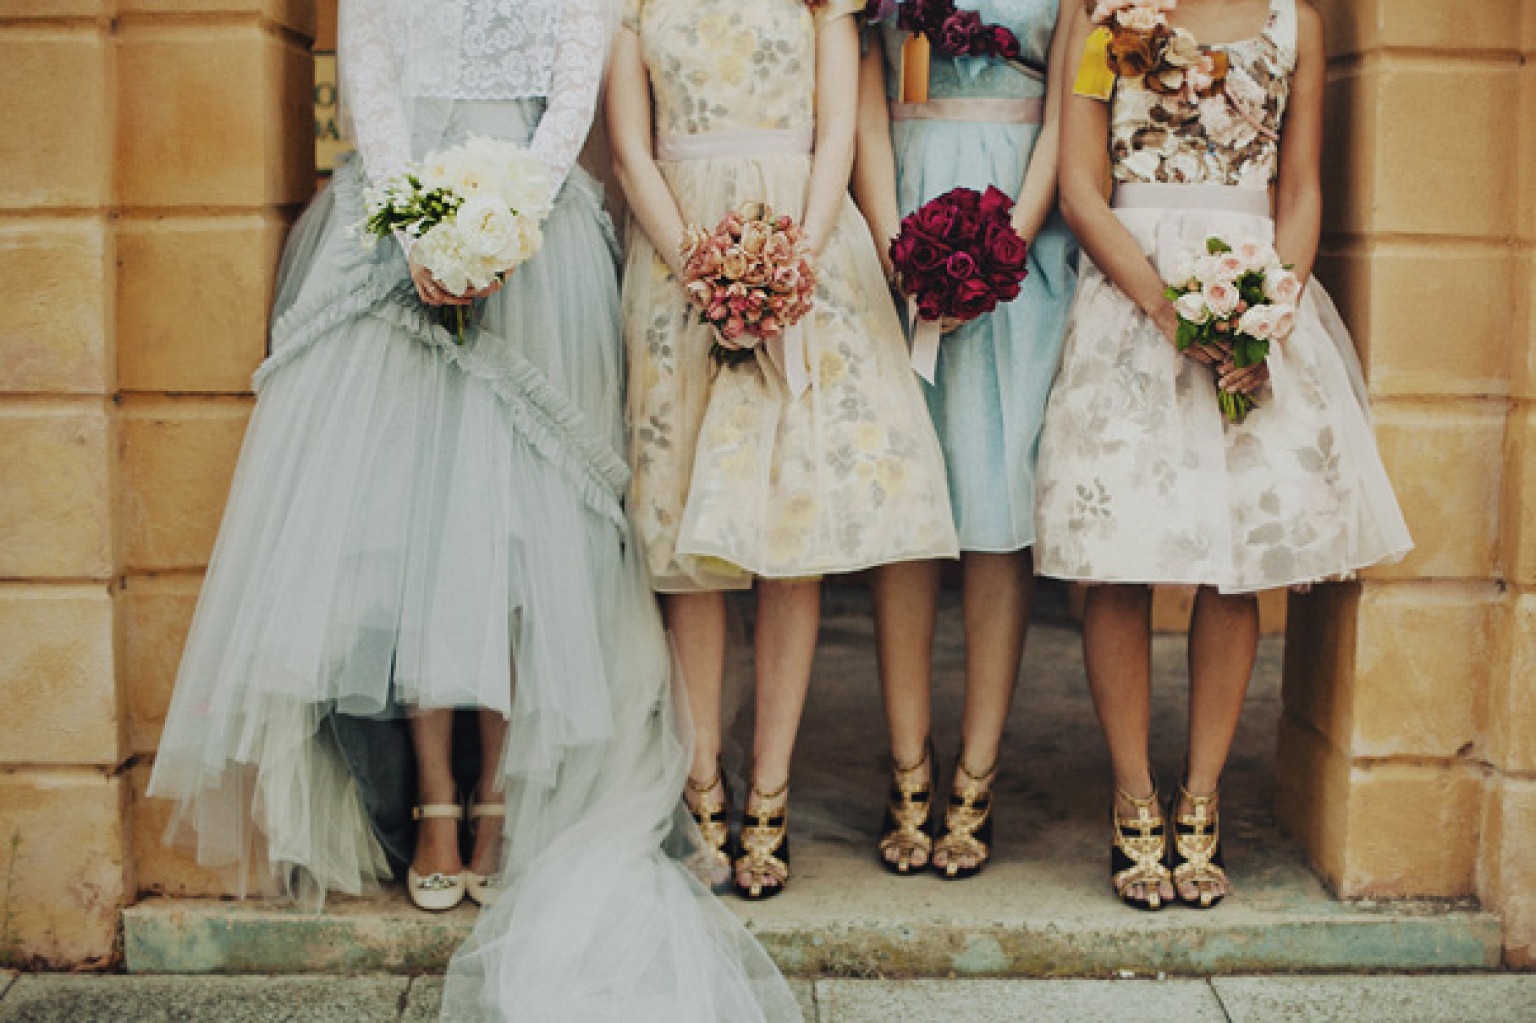 Vintage Bridesmaid Dresses That Don&-39-t Look Like Costumes (PHOTOS ...